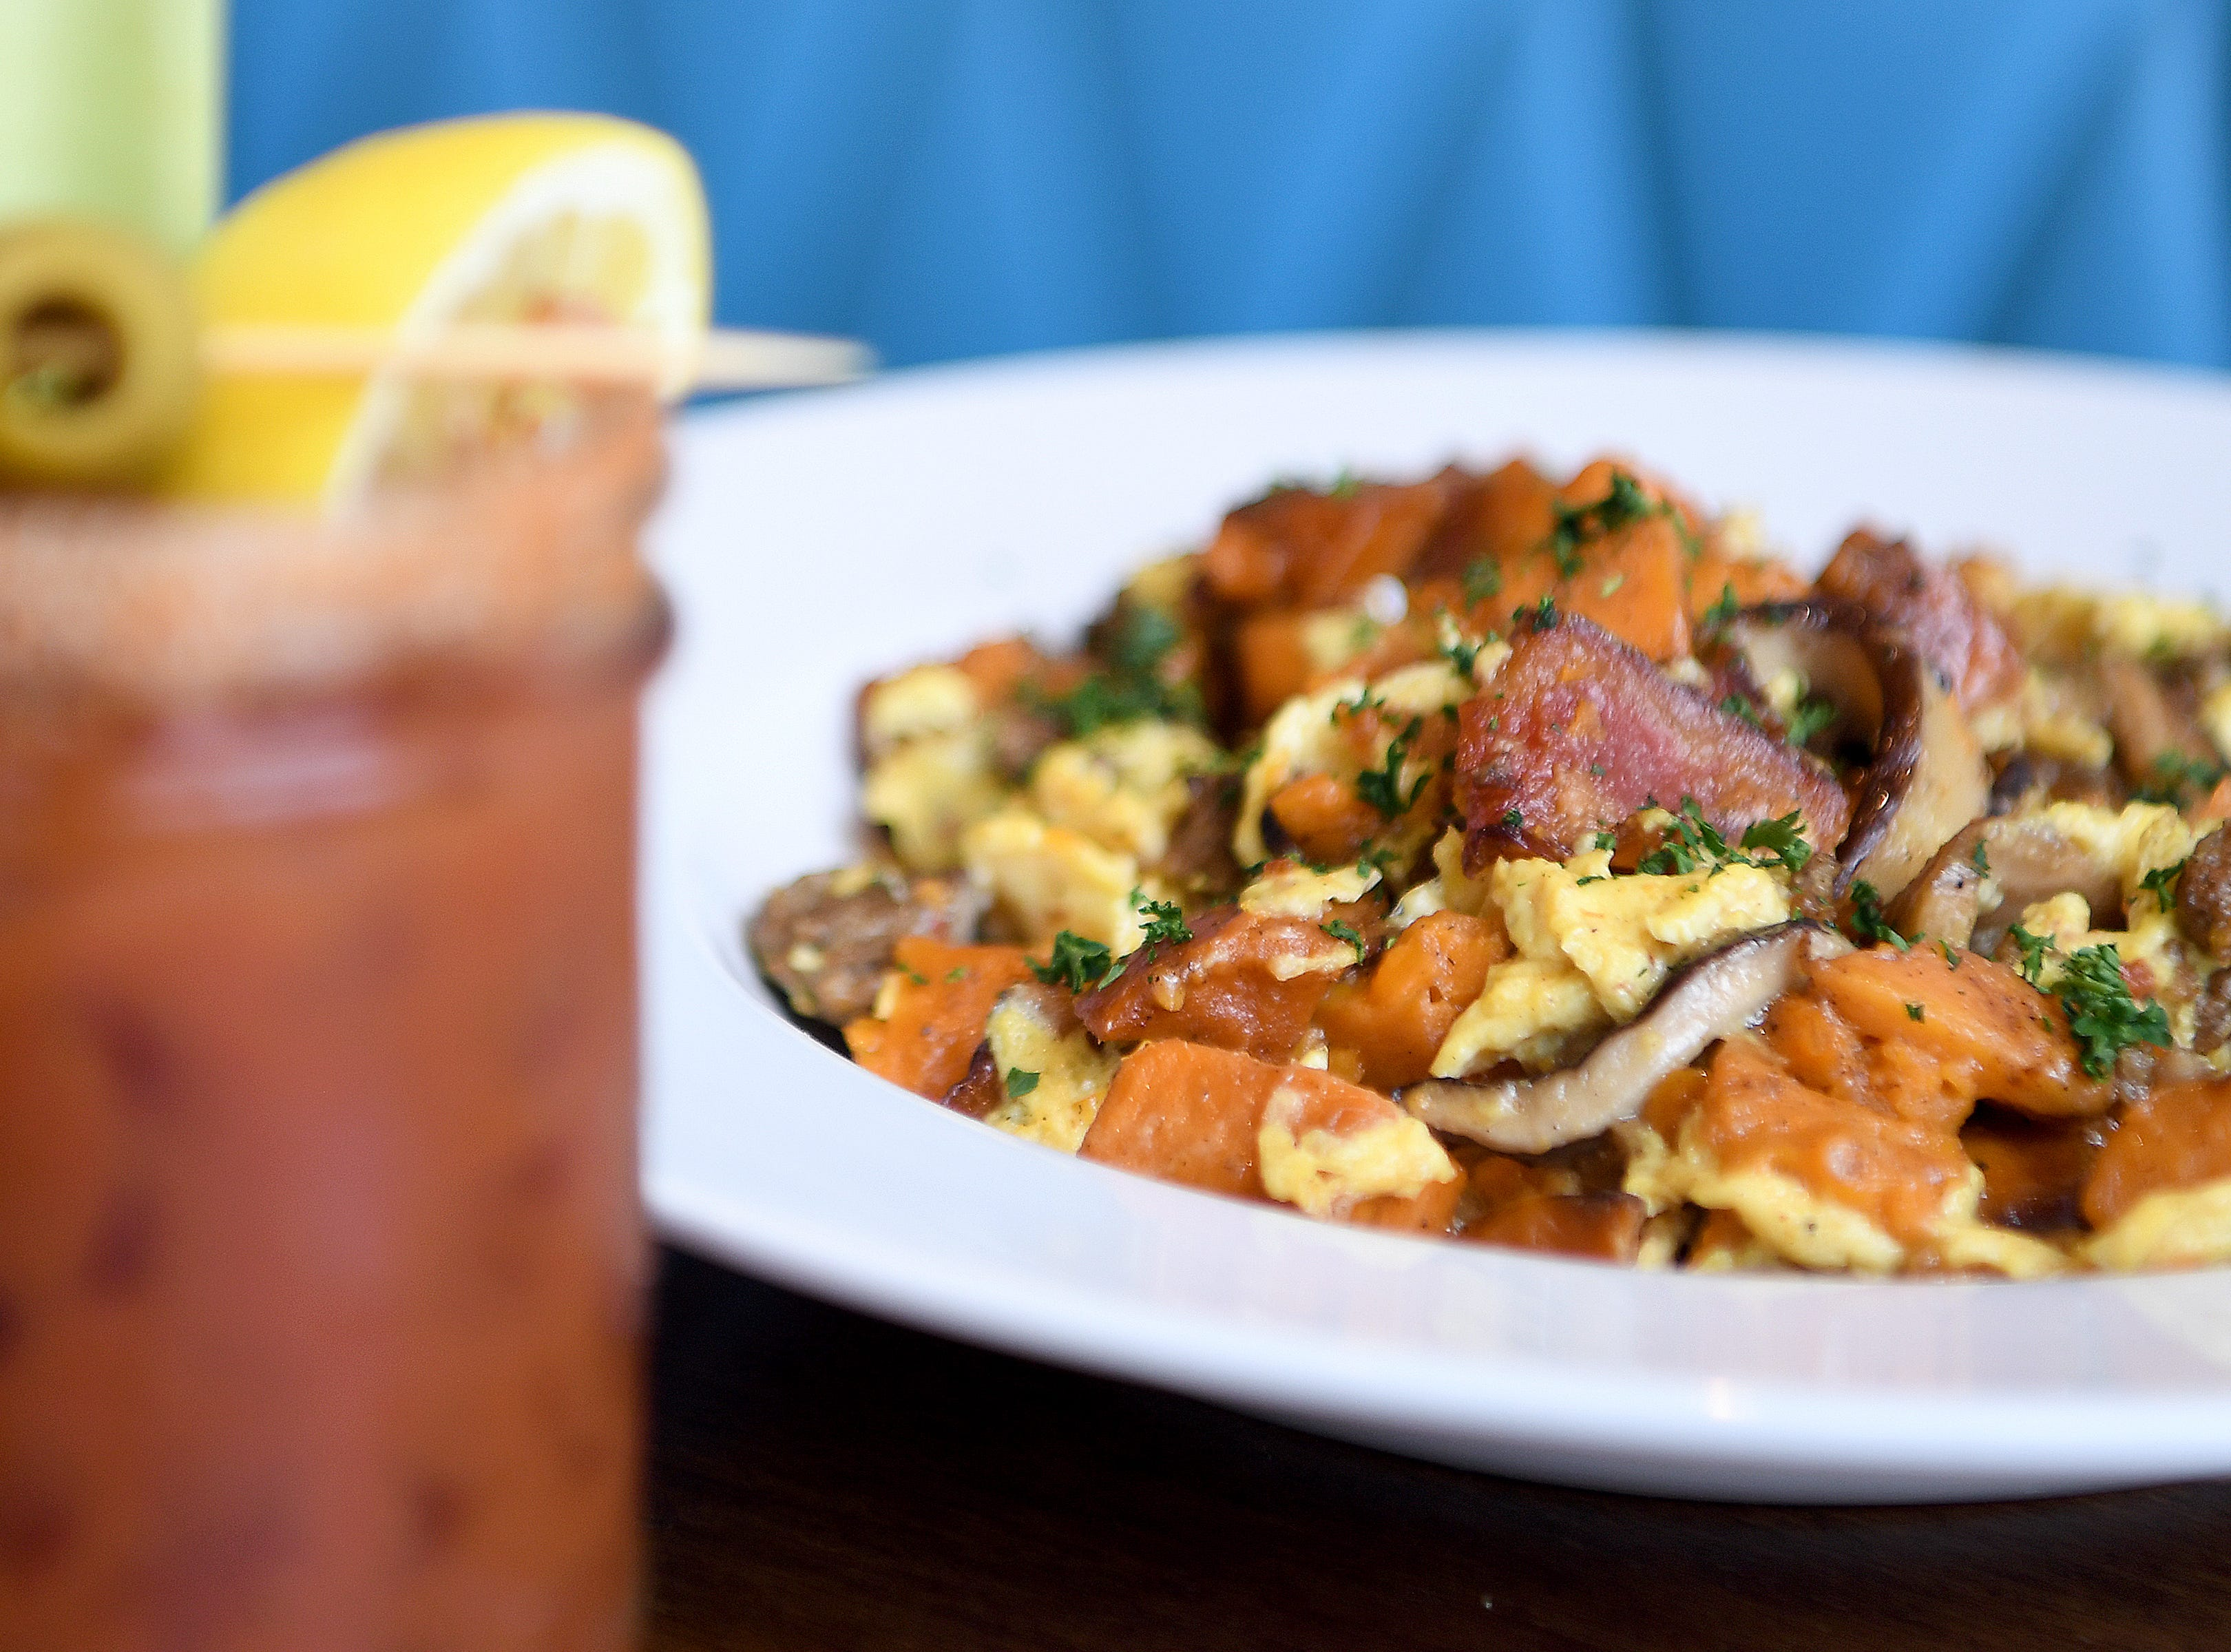 The local sausage and sweet potato scramble at Early Girl's West Asheville location is scrambled eggs with local sausage, shiitake mushrooms, sweet potatoes, bacon and green onions.